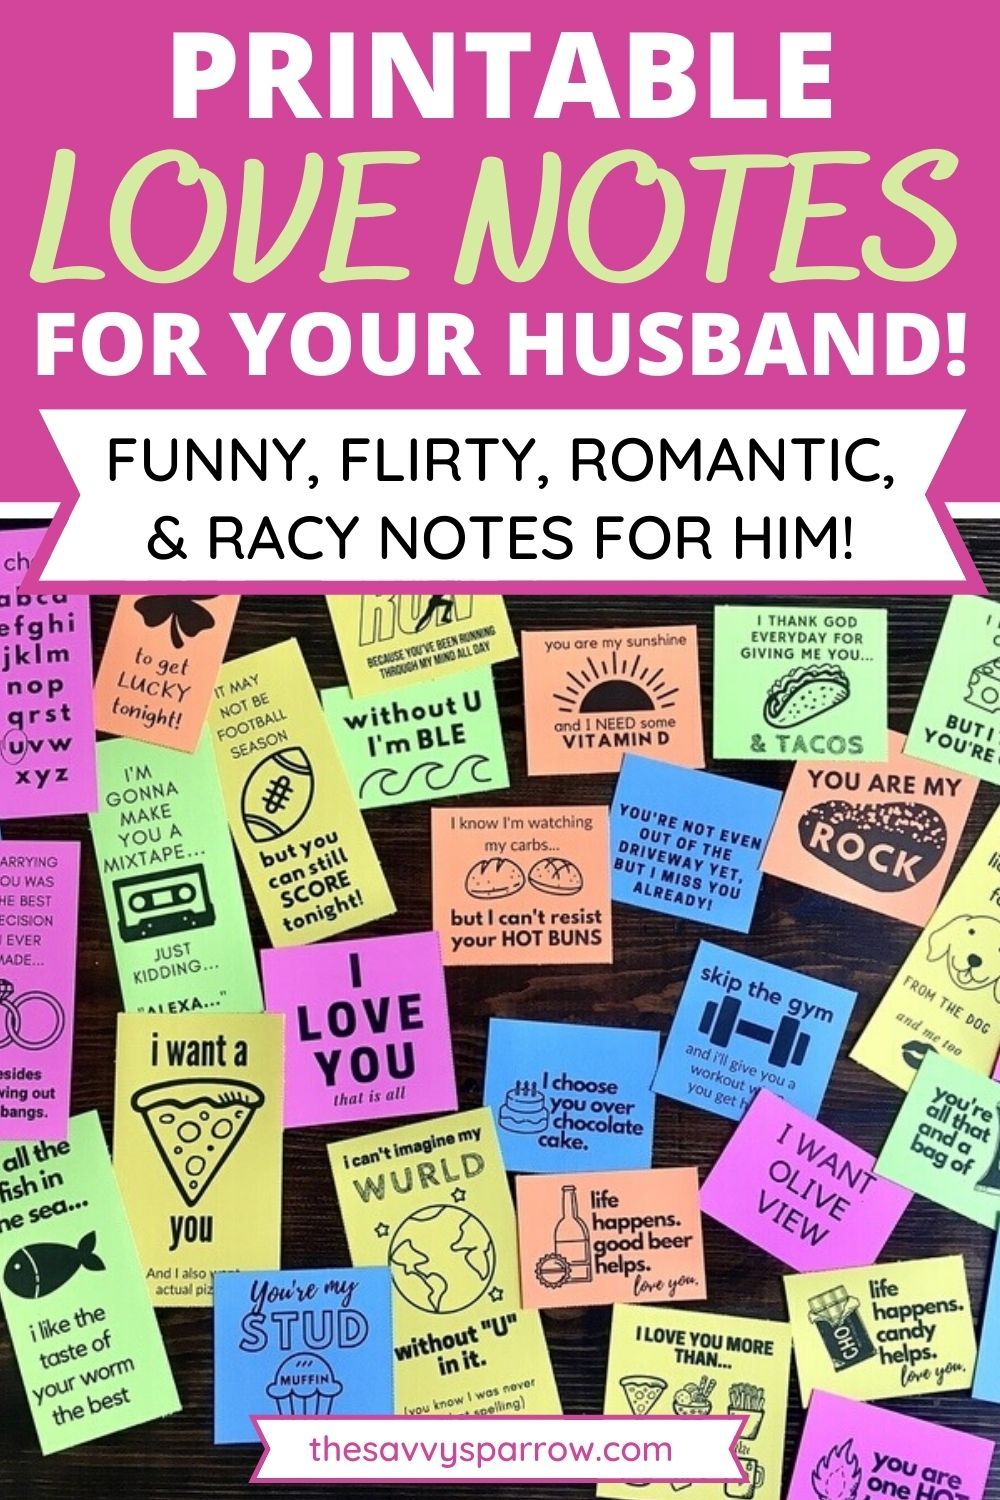 Funny Notes To Leave Your Husband : funny, notes, leave, husband, Funny, Flirty, Notes, Leave, Husband, Boyfriend,